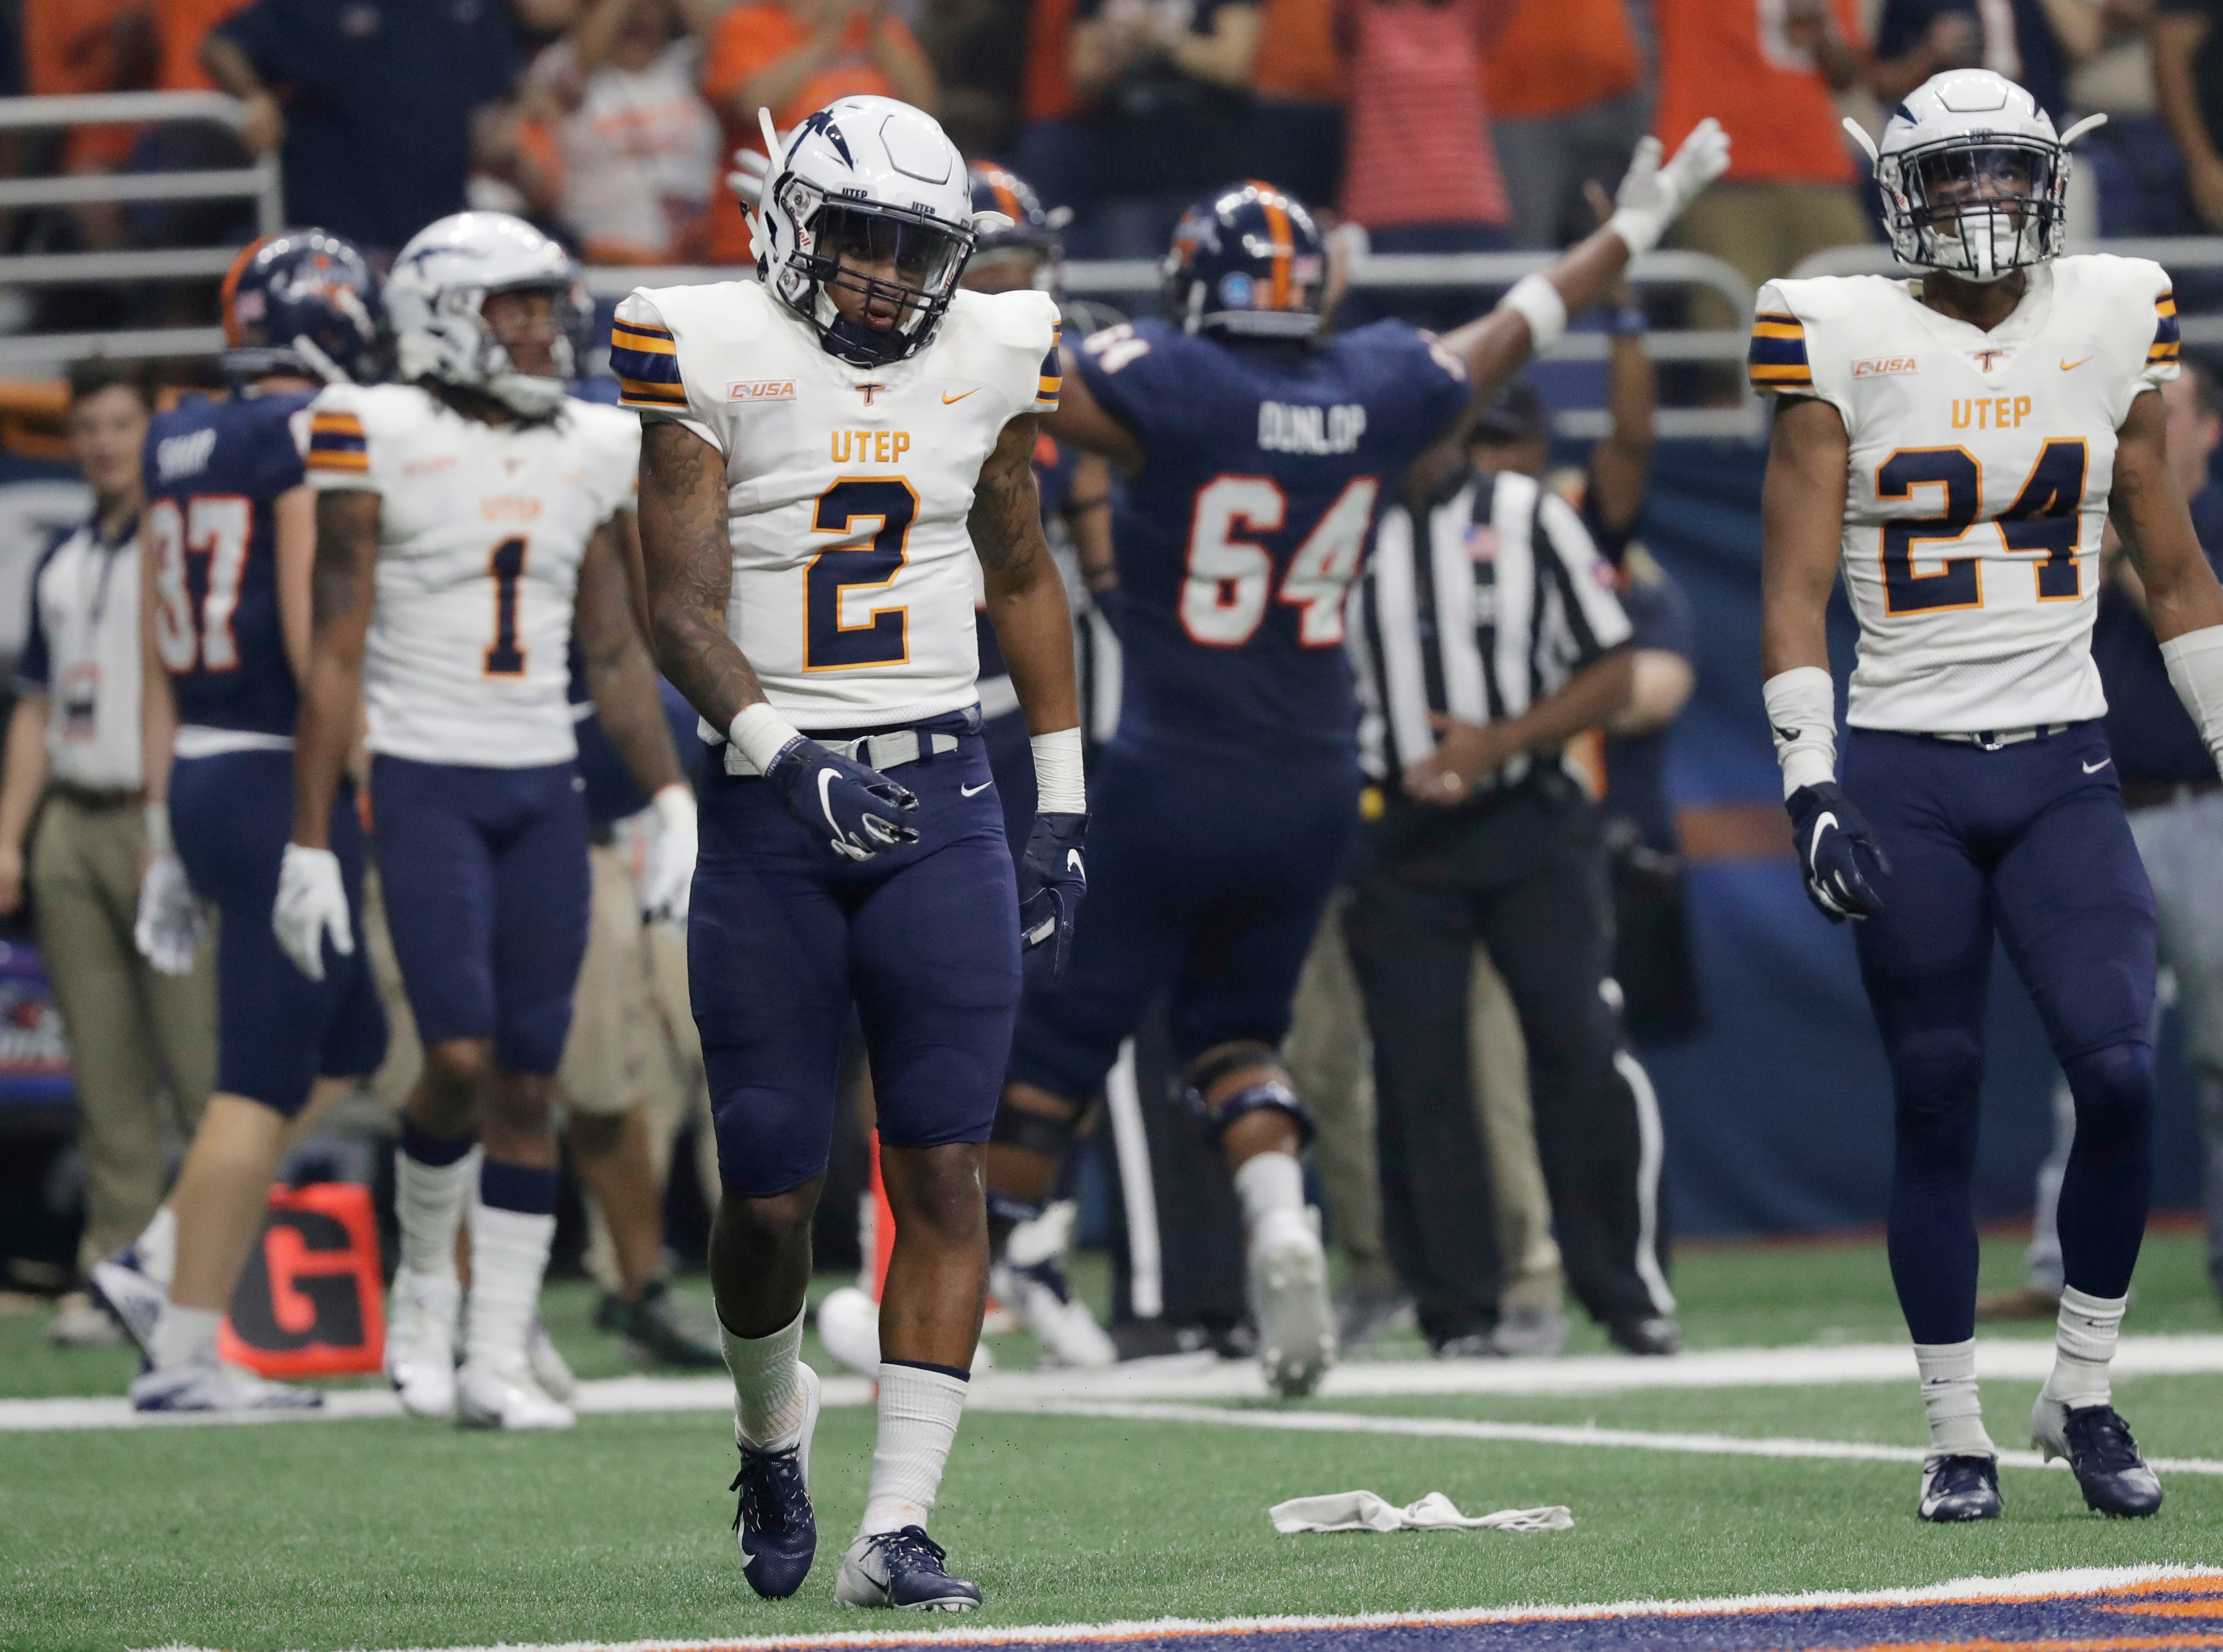 UTEP defenders Kalon Beverly (1), Michael Lewis (2) and Kahani Smith (24) walk off of the field as UTSA players celebrate a touchdown during the first half of an NCAA college football game Saturday, Sept. 29, 2018, in San Antonio. (AP Photo/Eric Gay)